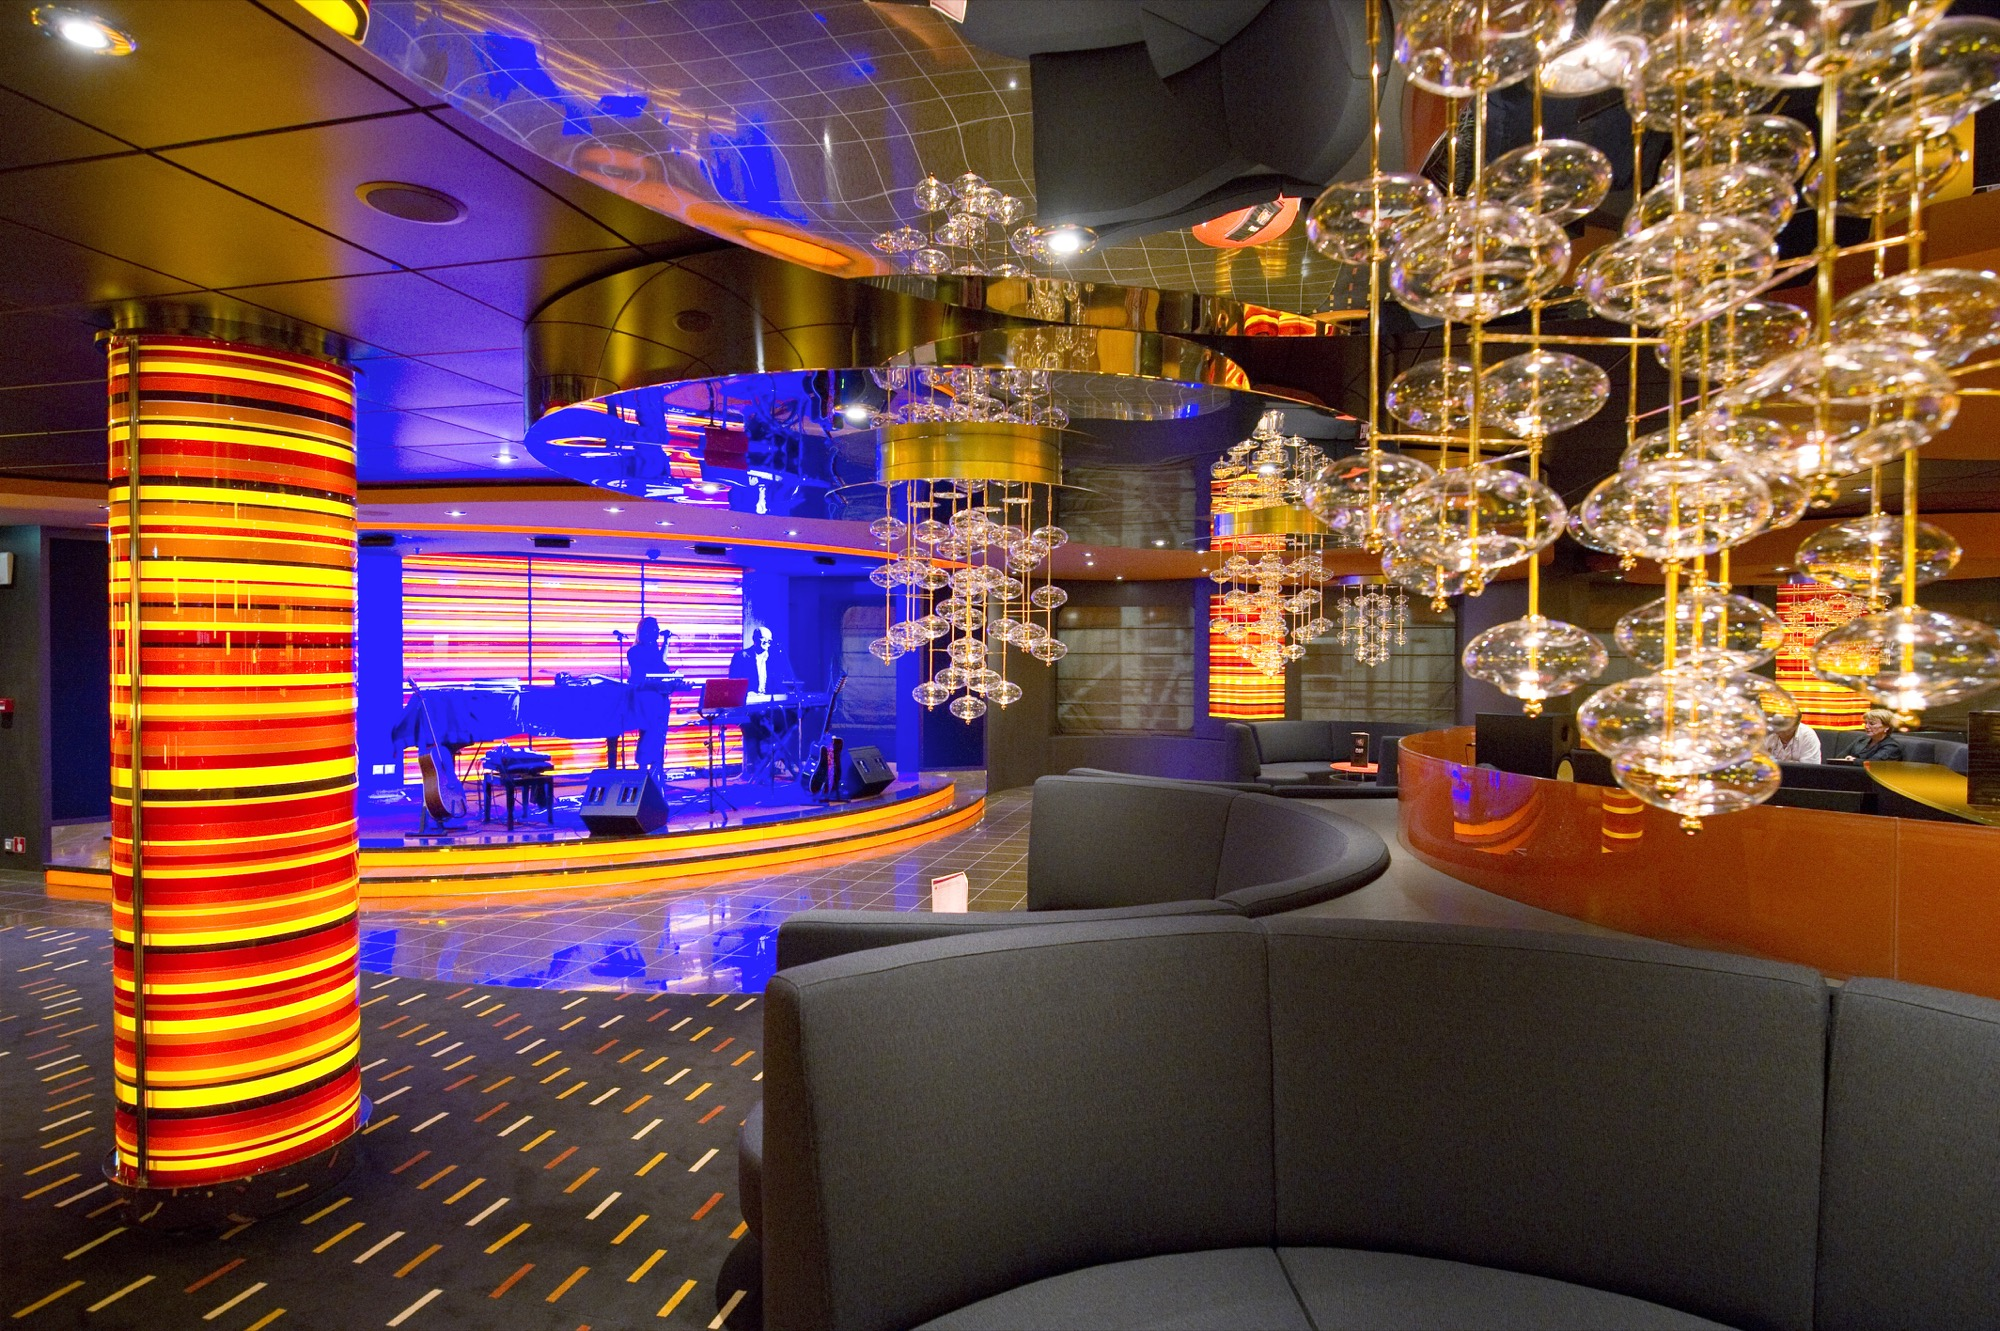 MSC Fantasia Class jazz bar.jpg